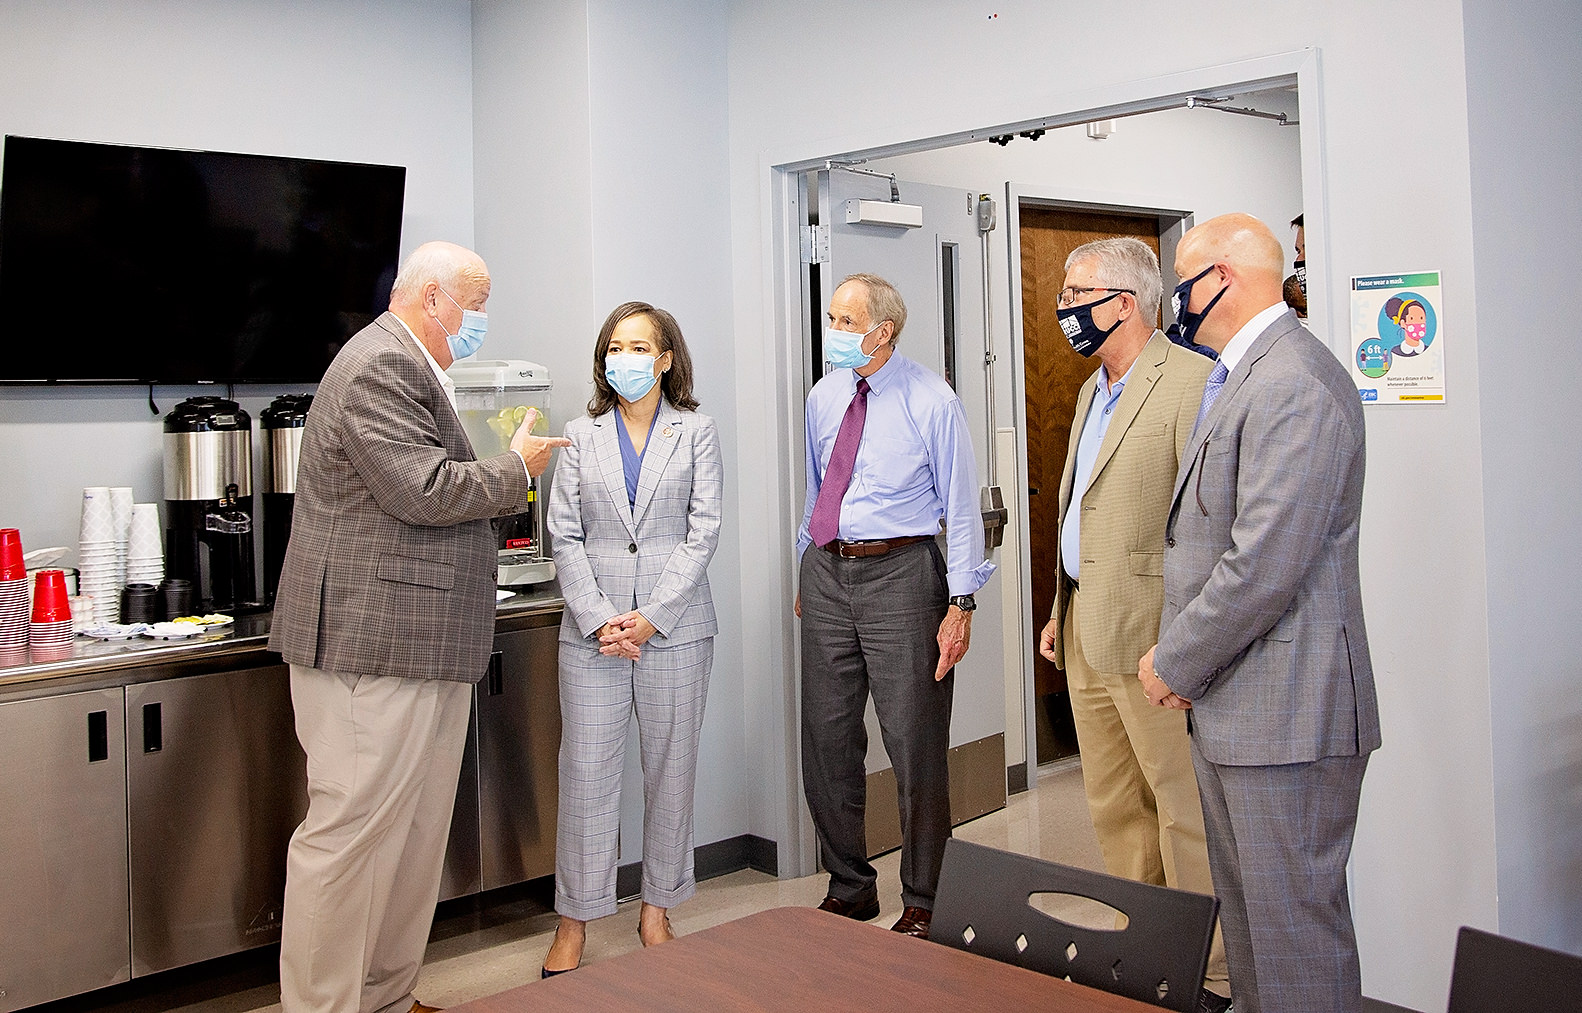 PeachTree Health Group Celebrates New Facility With Ribbon Cutting Ceremony